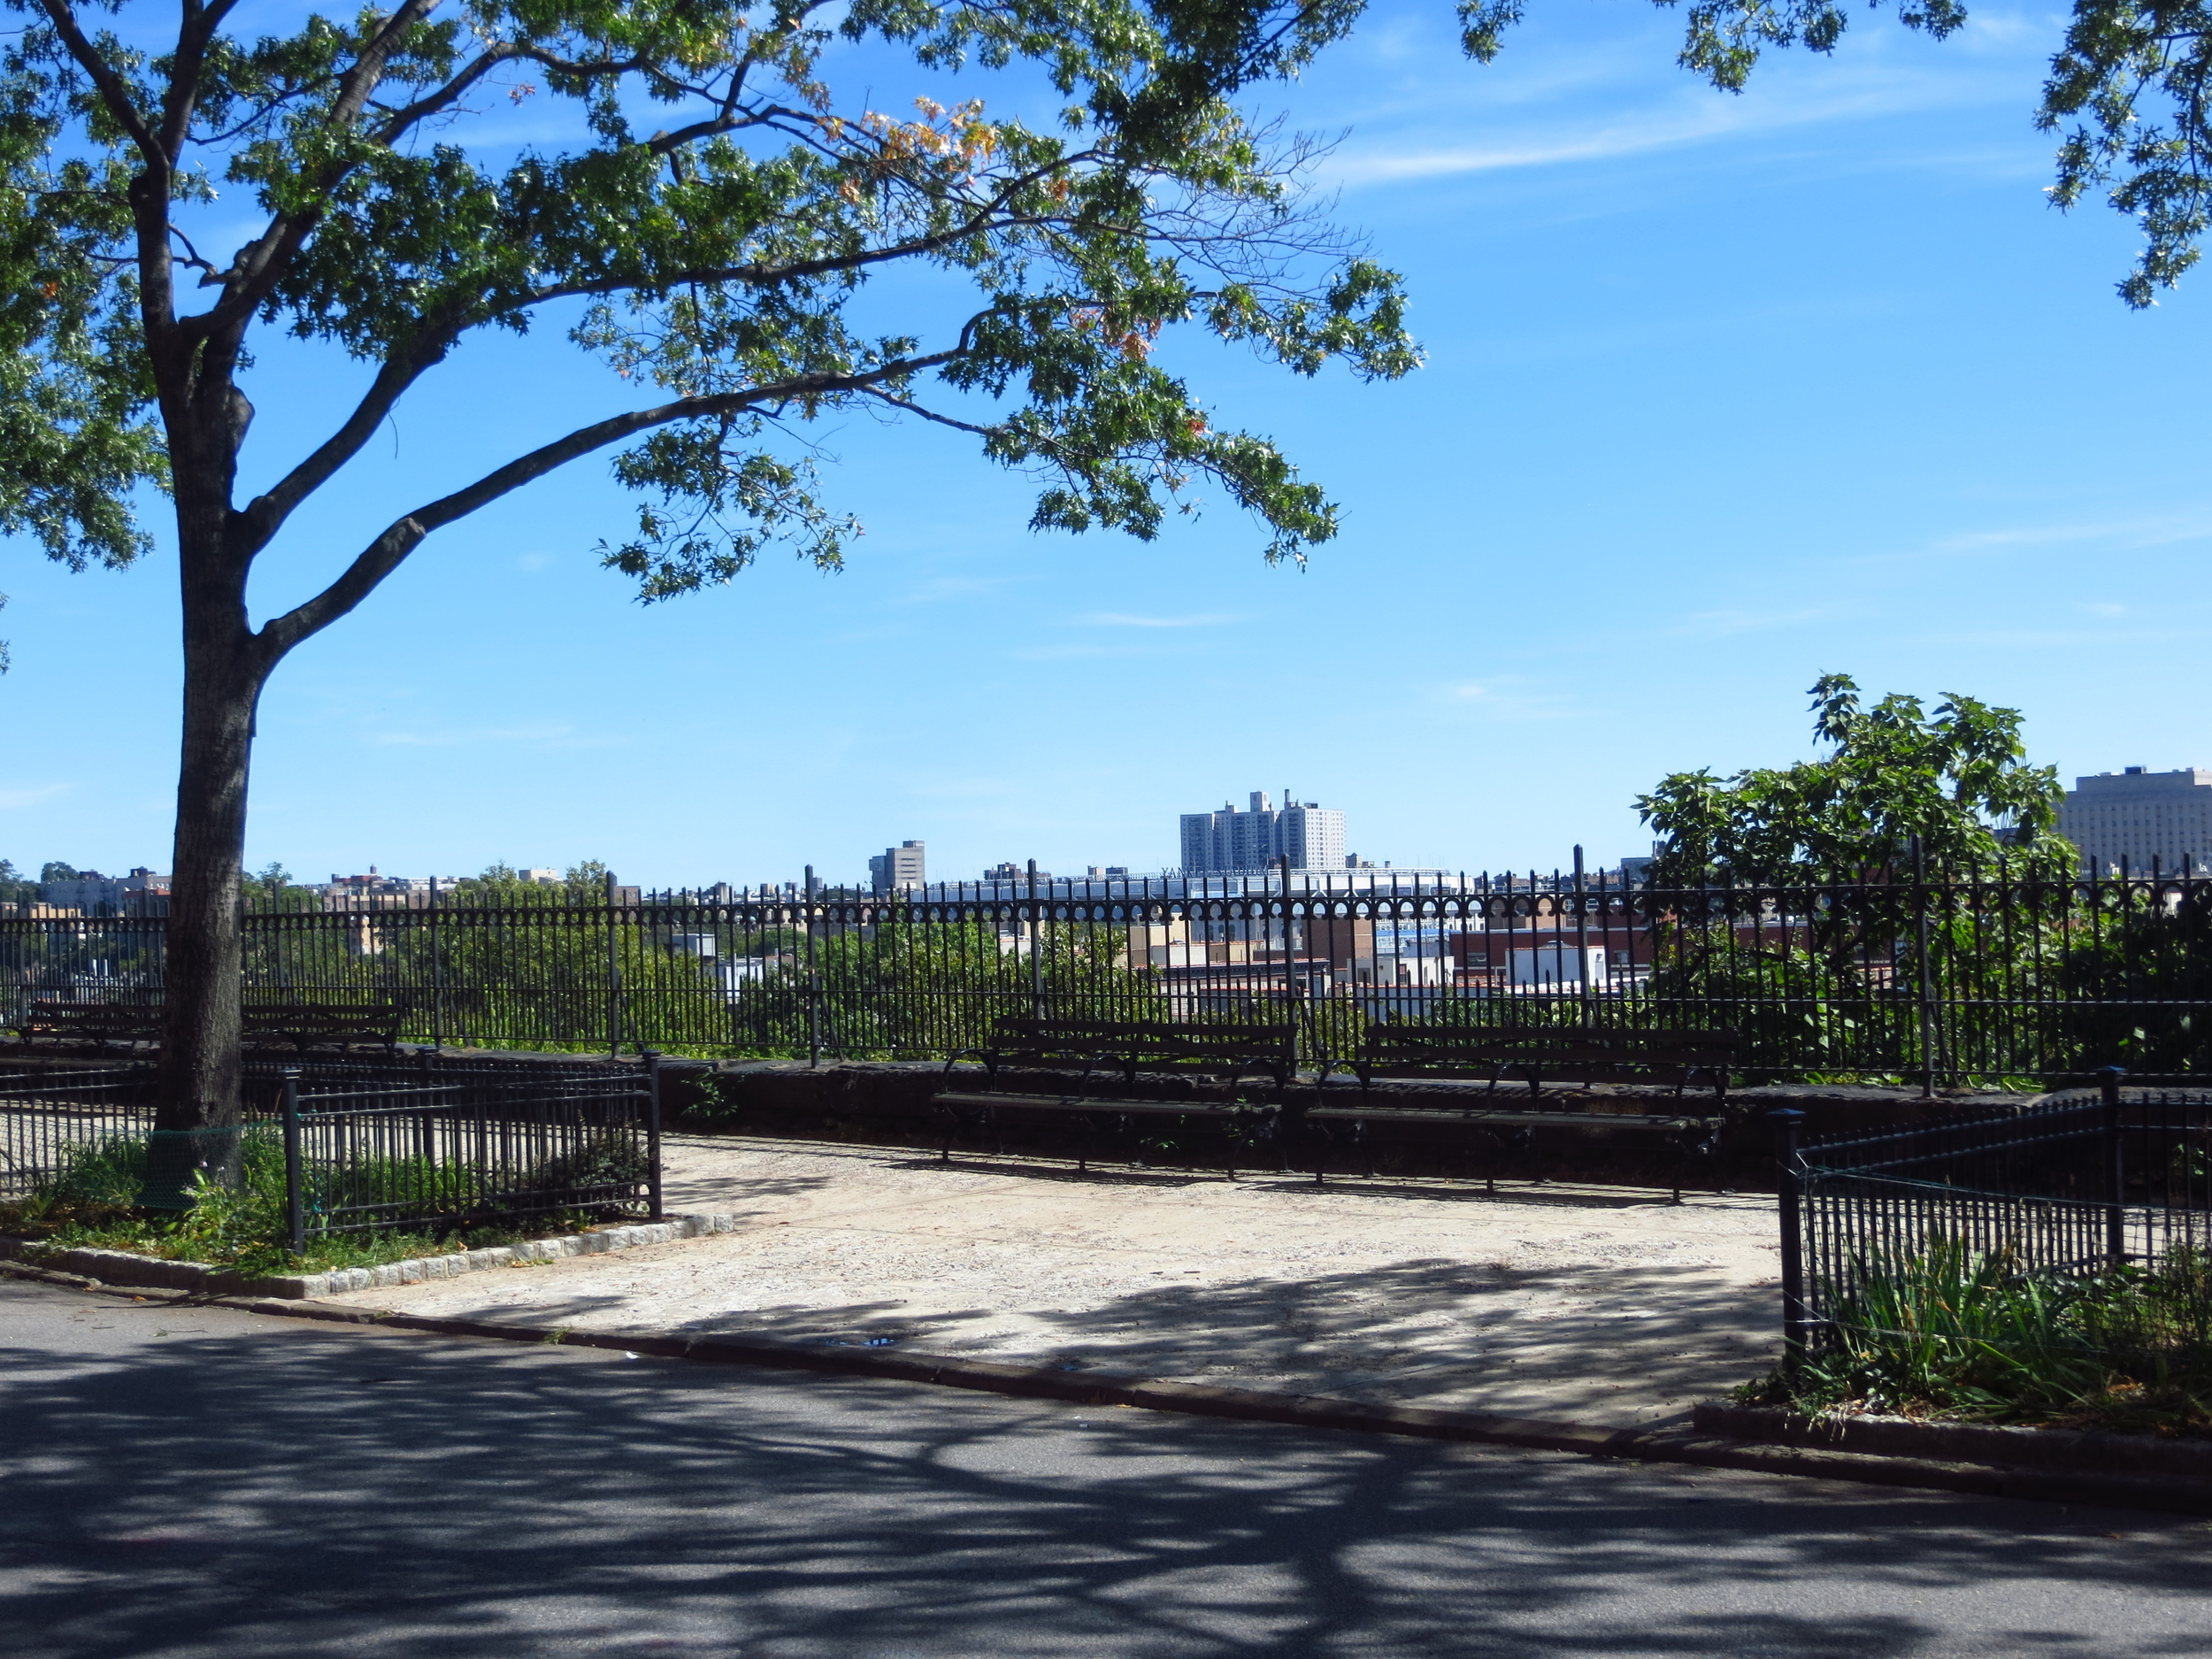 View from Edgecombe Ave. over North Harlem